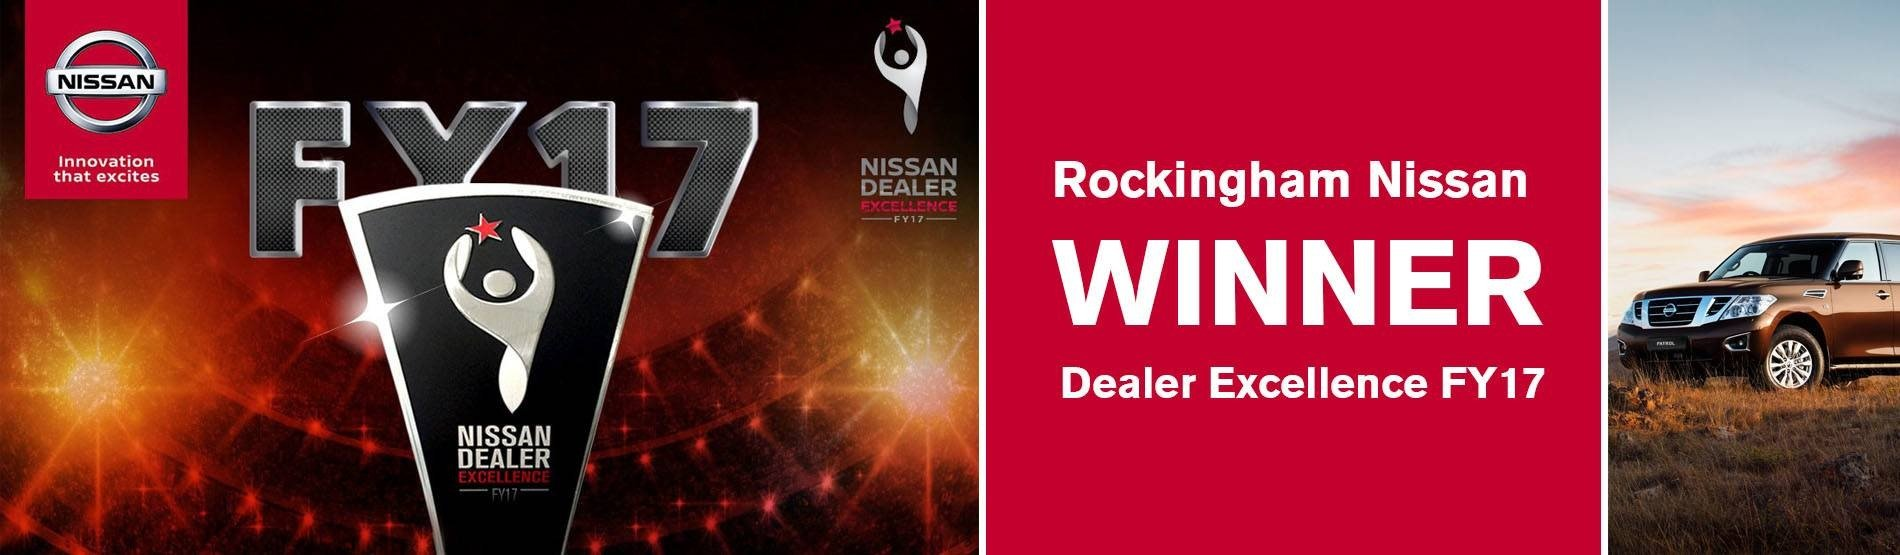 Rockingham Nissan Dealer Excellence Award